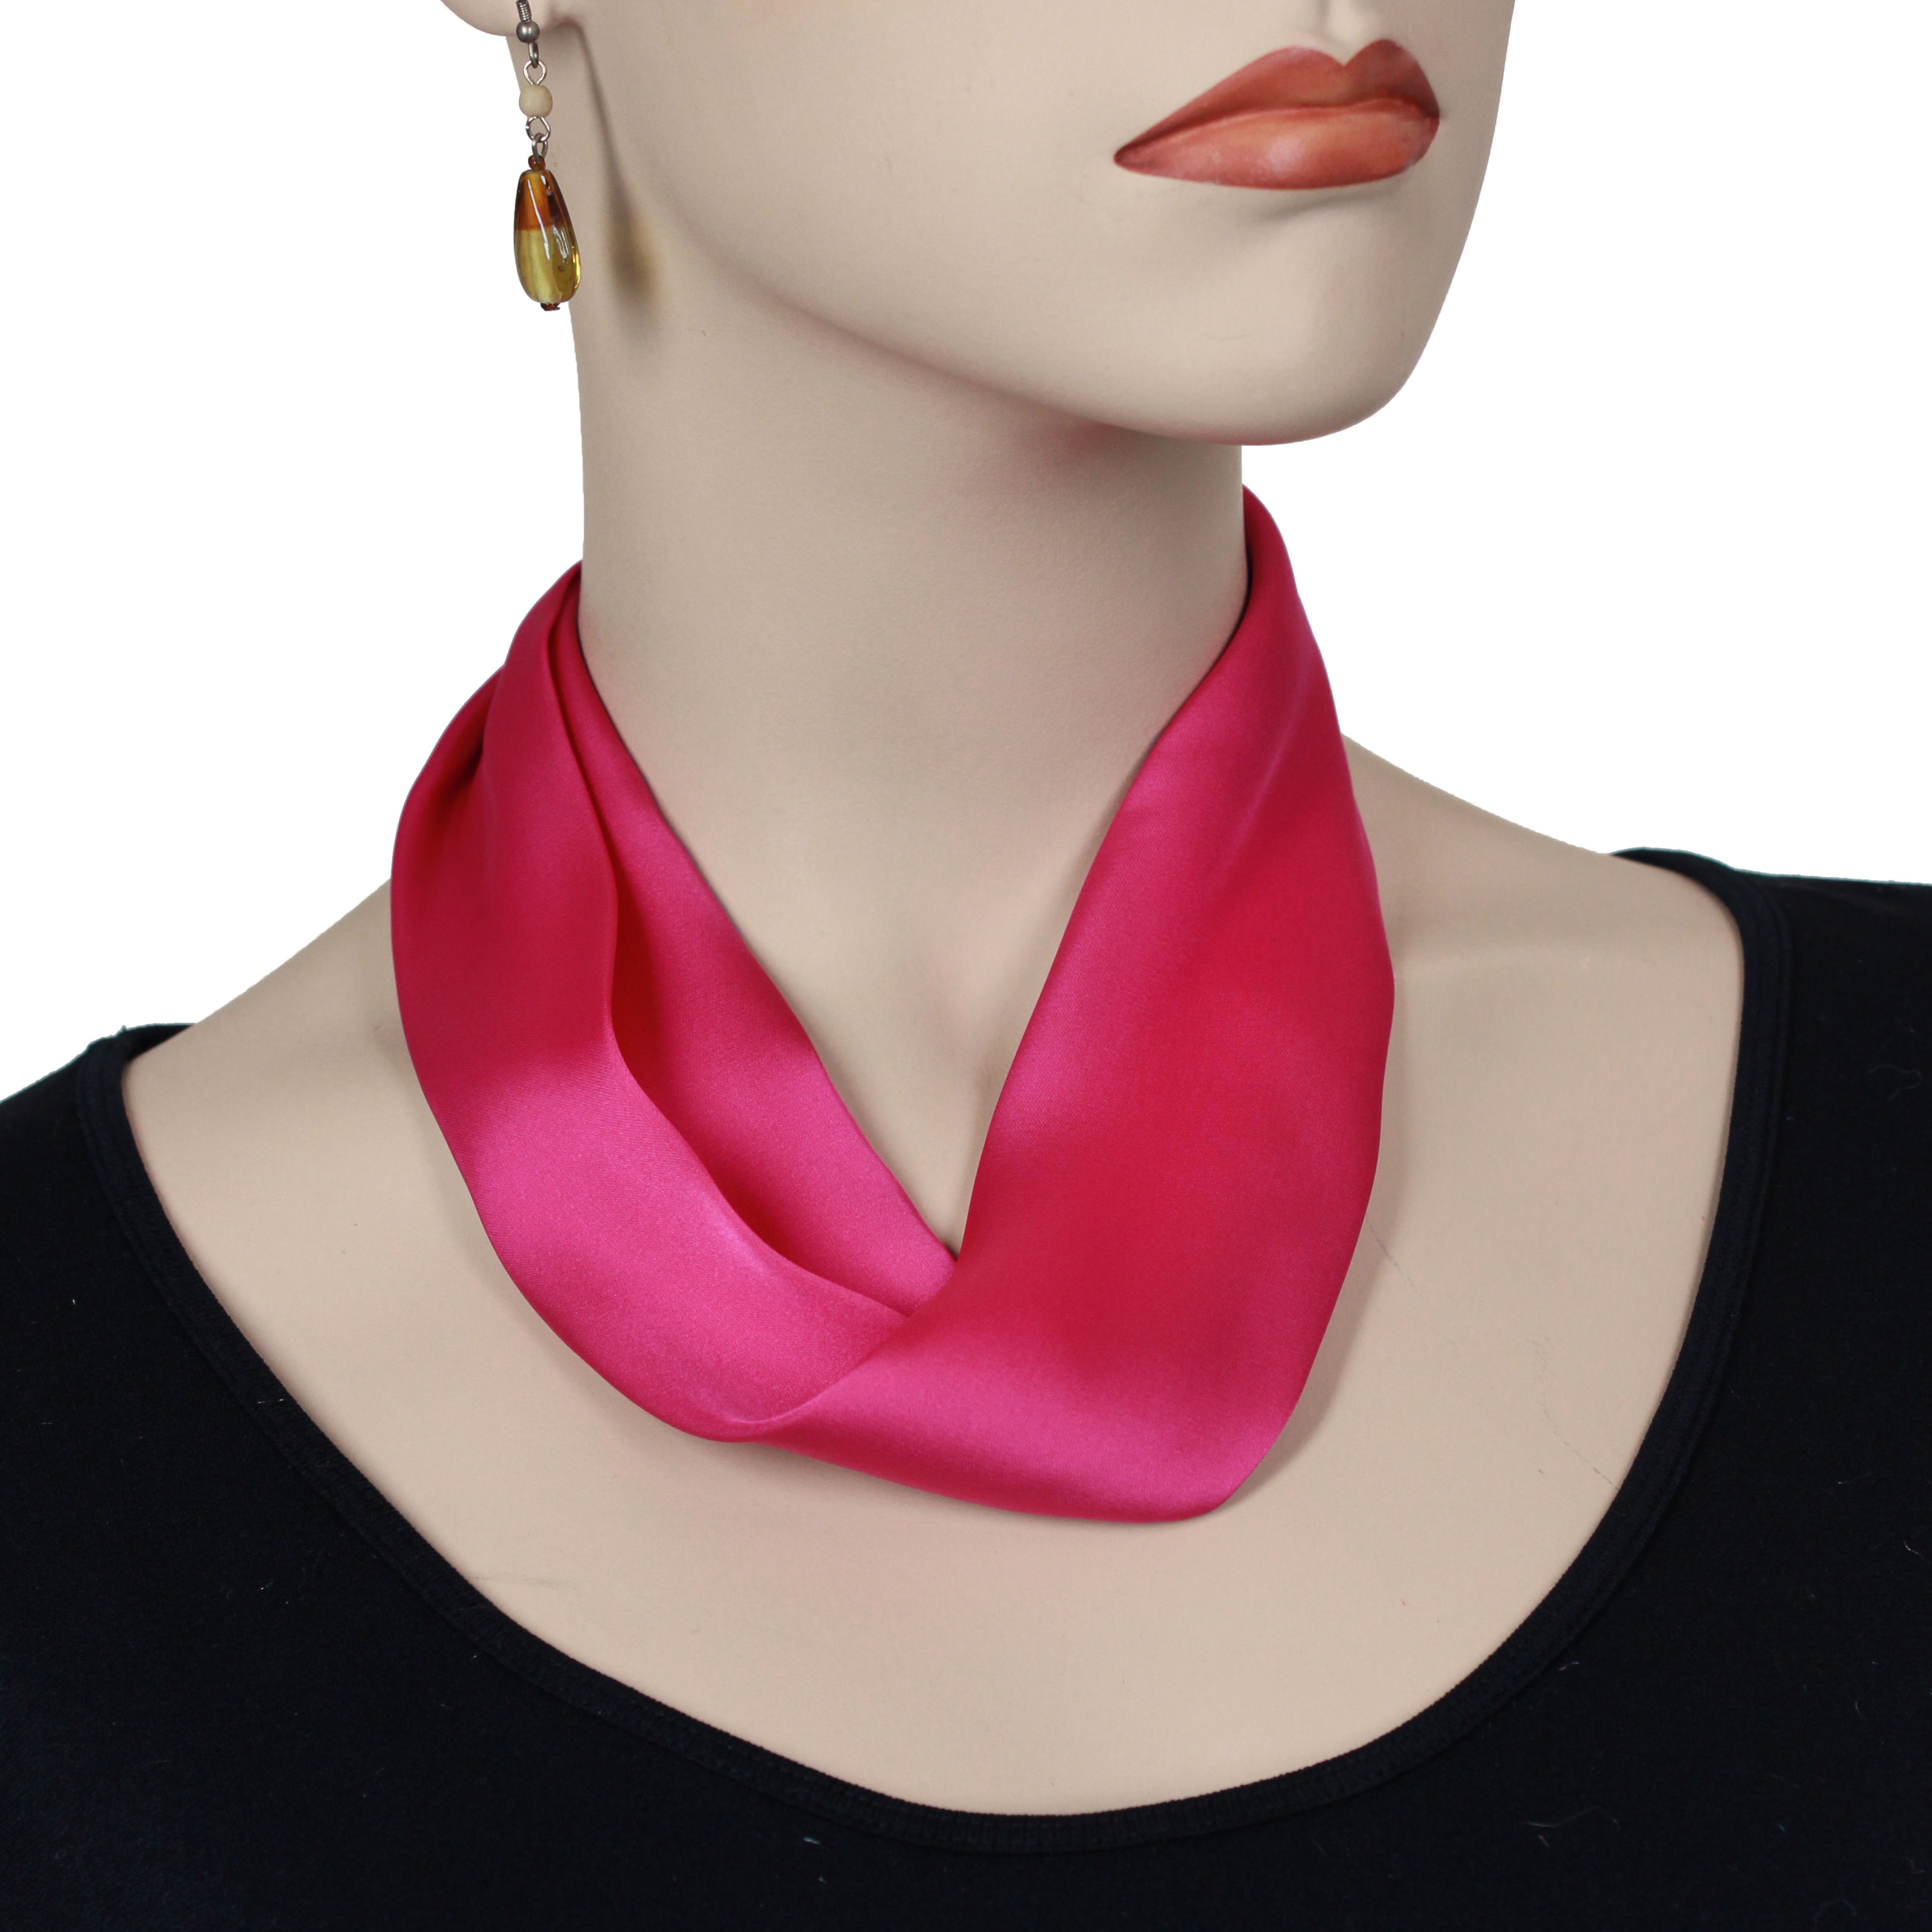 Satin Magnet Necklace with Optional Pendant - #027 Hot Pink (Silver Magnet)